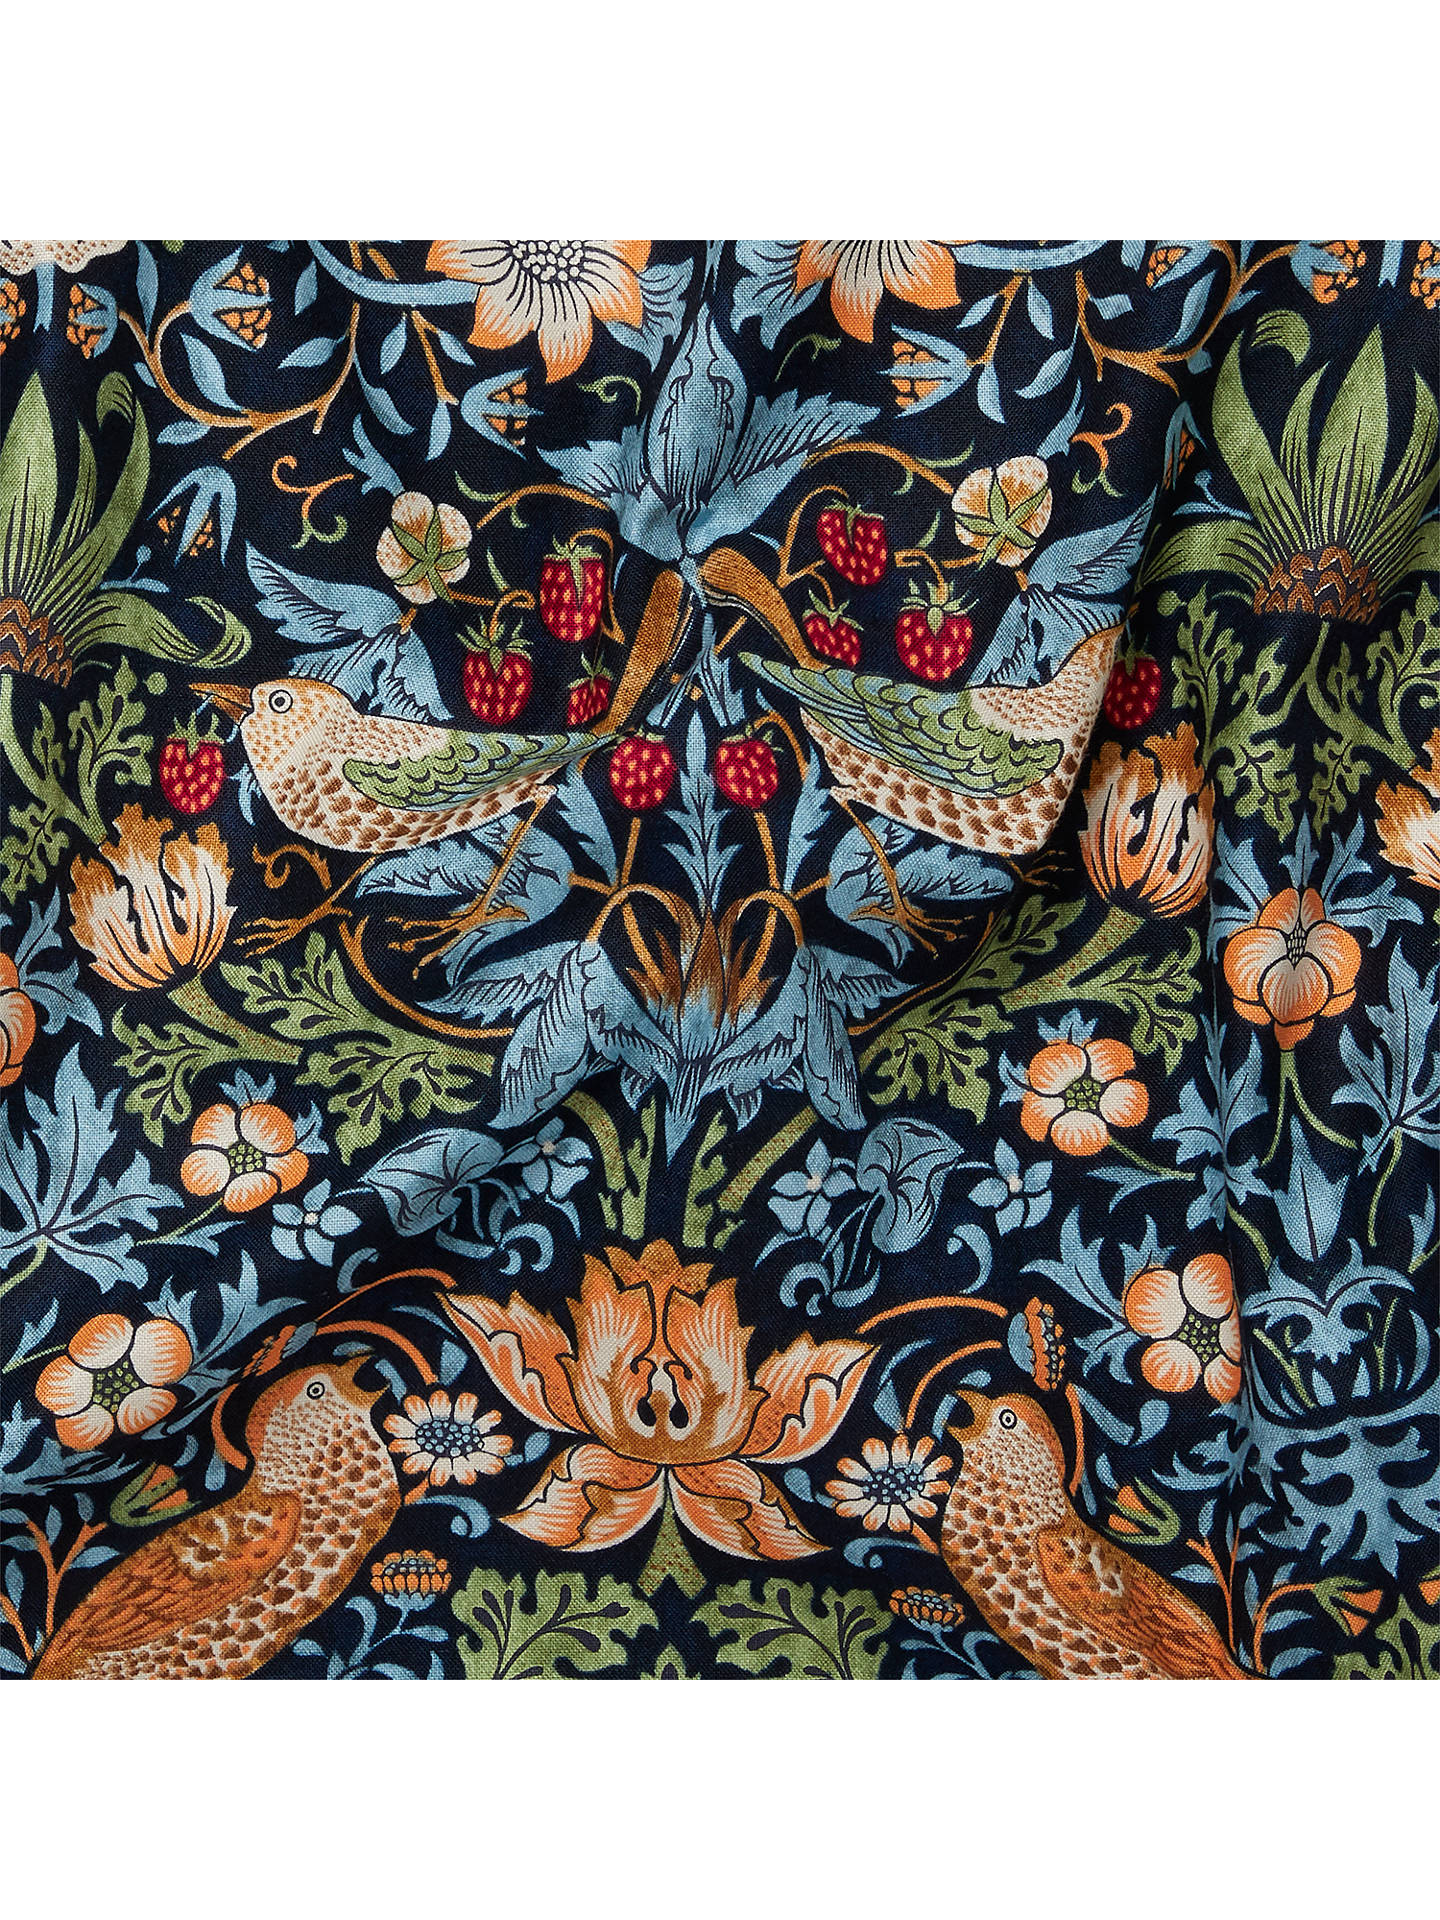 Buy Morris & Co. Strawberry Thief Fabric, Navy Online at johnlewis.com